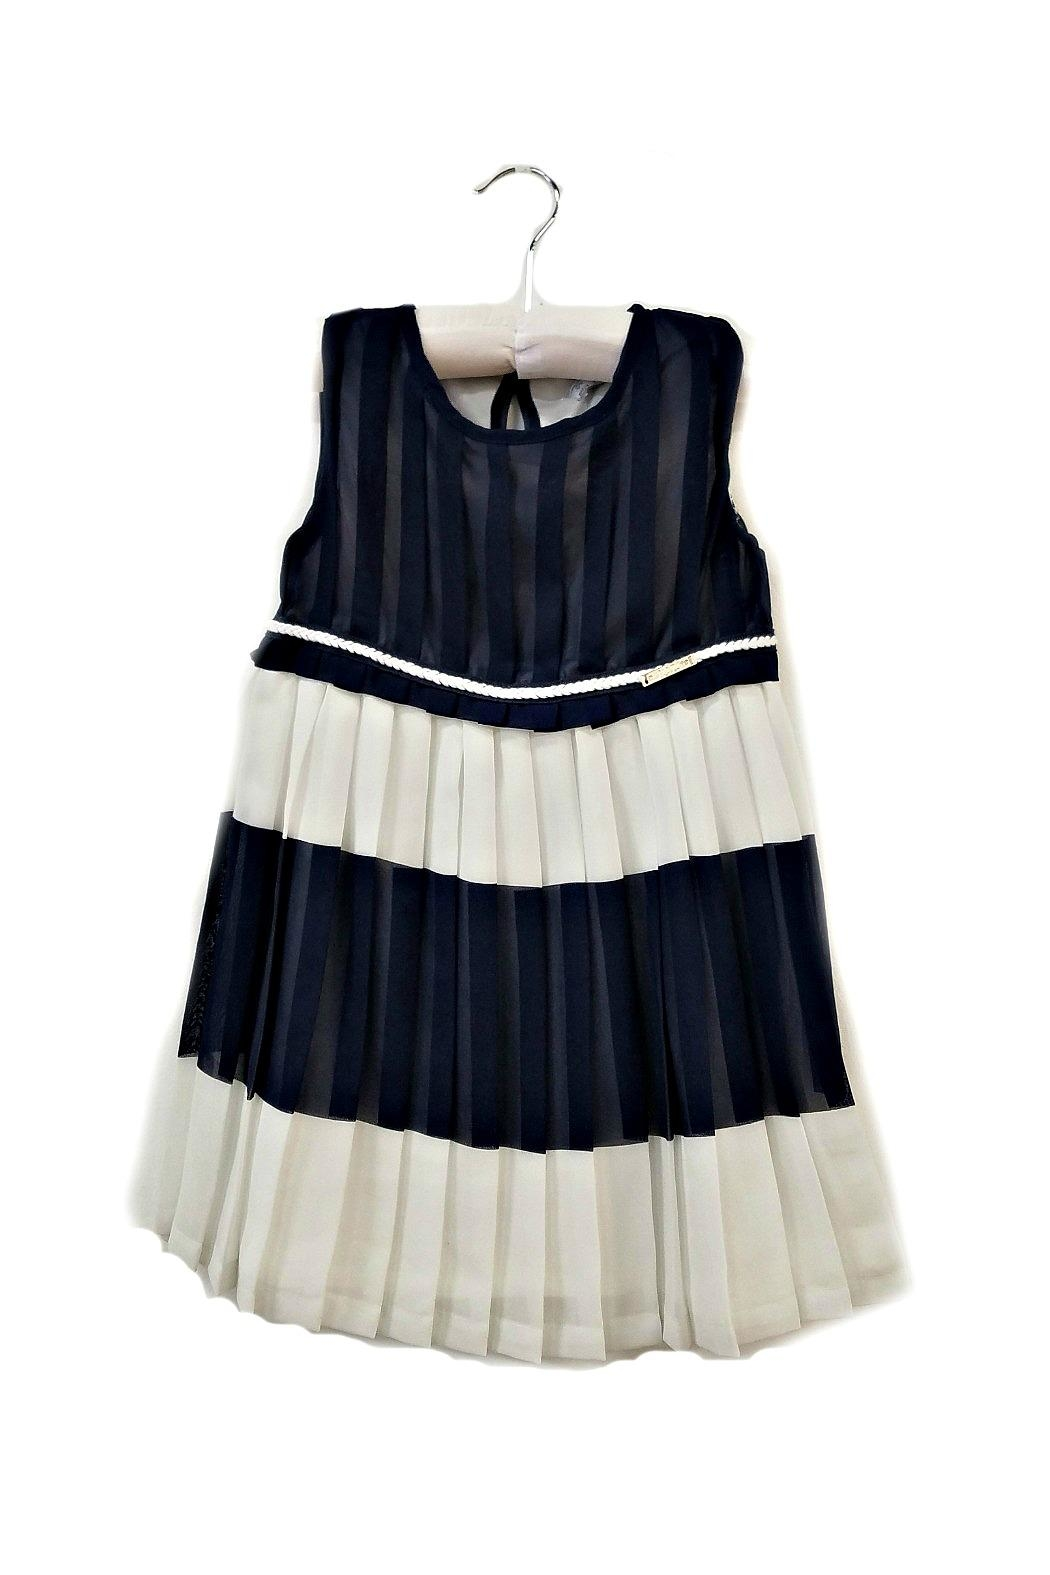 Mayoral Navy-And-White Pleated-Chiffon Dress - Main Image